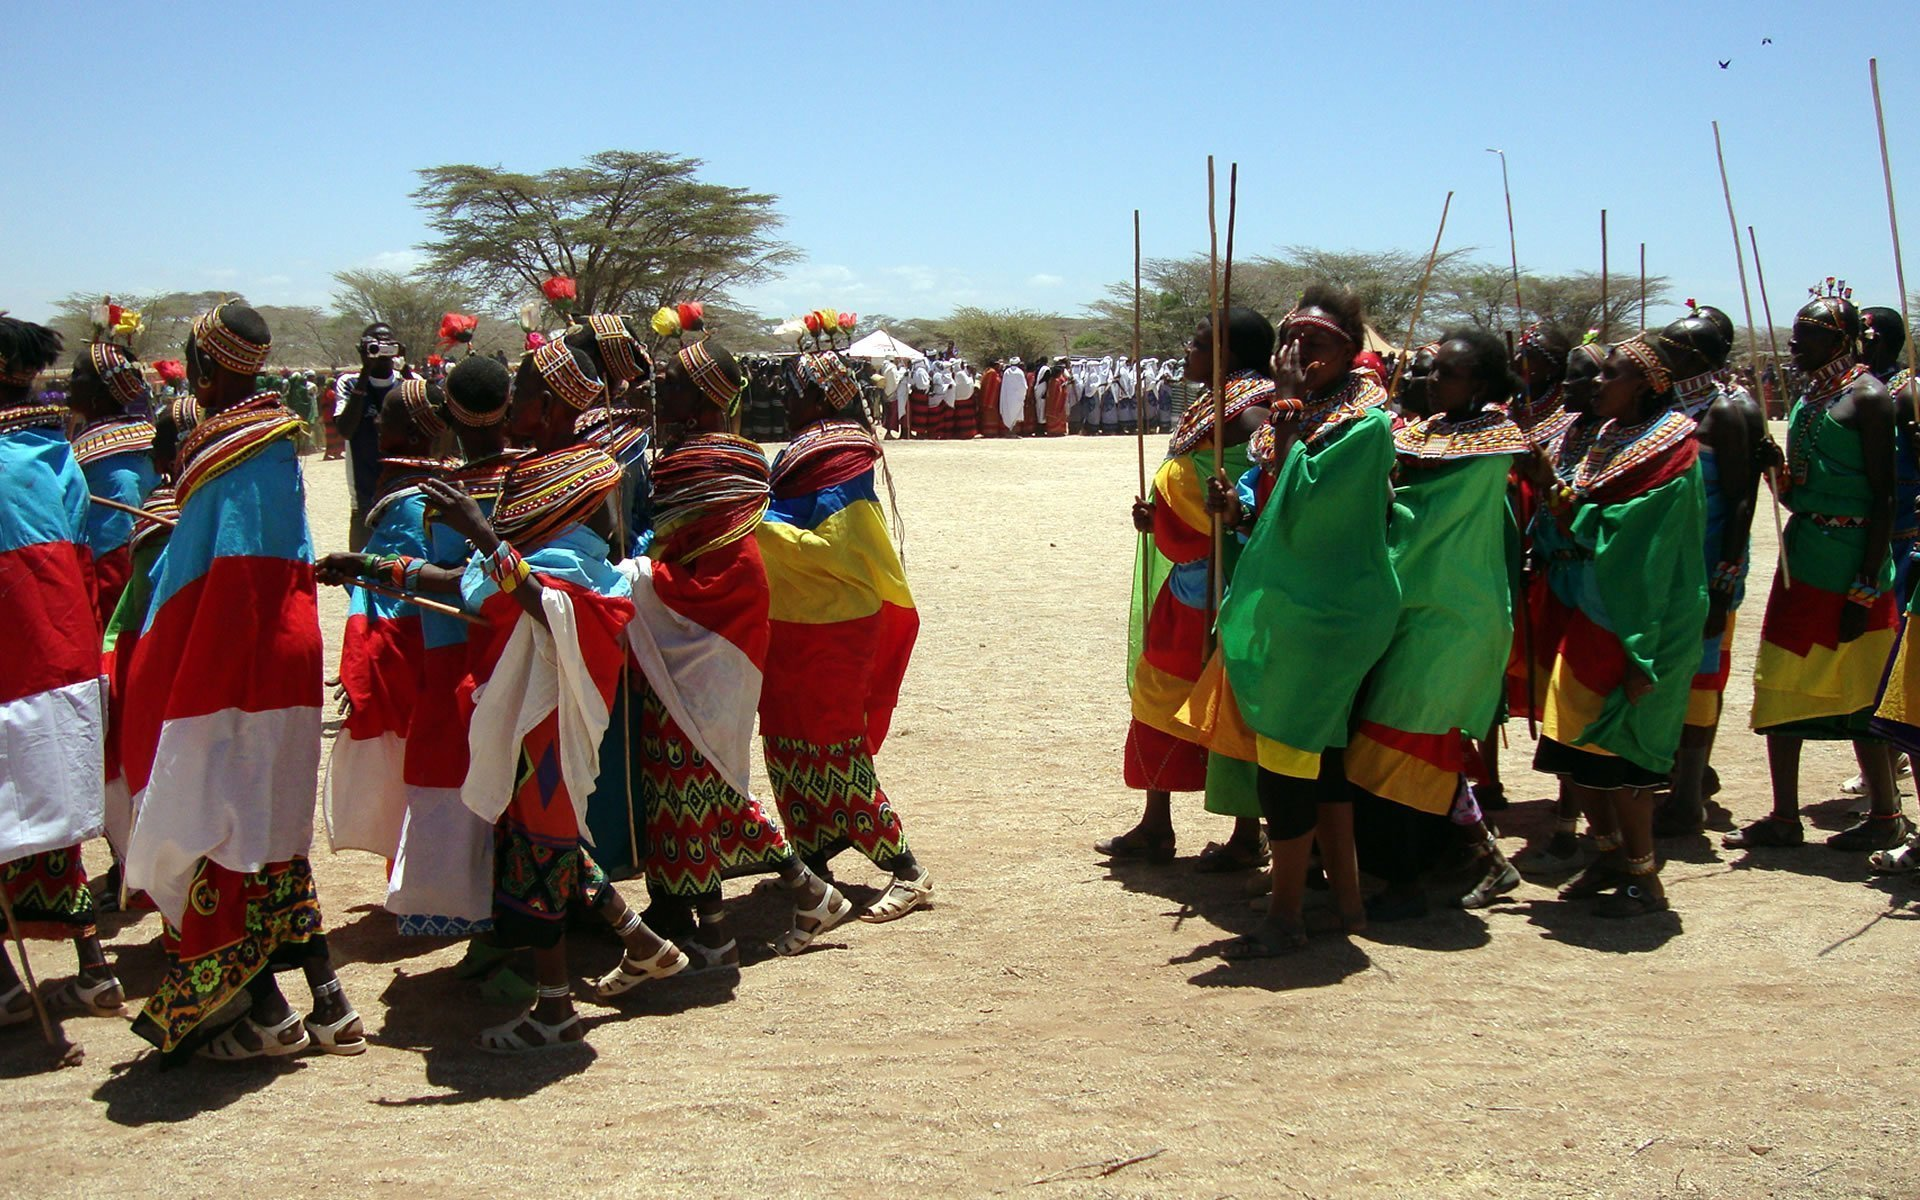 The Samburu still cherish and retain the customs and ceremonies of their forebears, unlike most other tribes in Kenya.